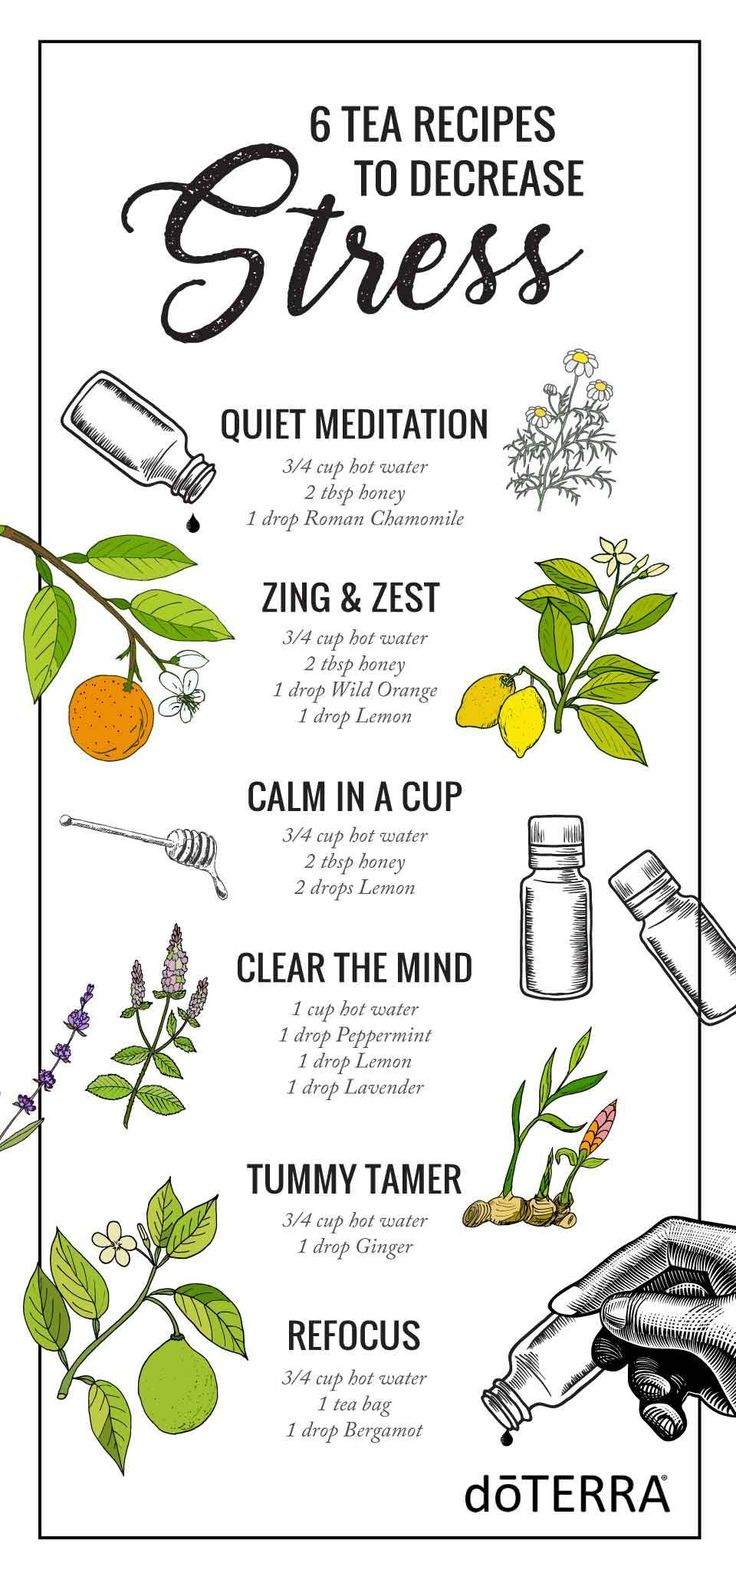 Need a stress-free moment? Try one of these 6 tea recipes! They are delicious and relaxing.